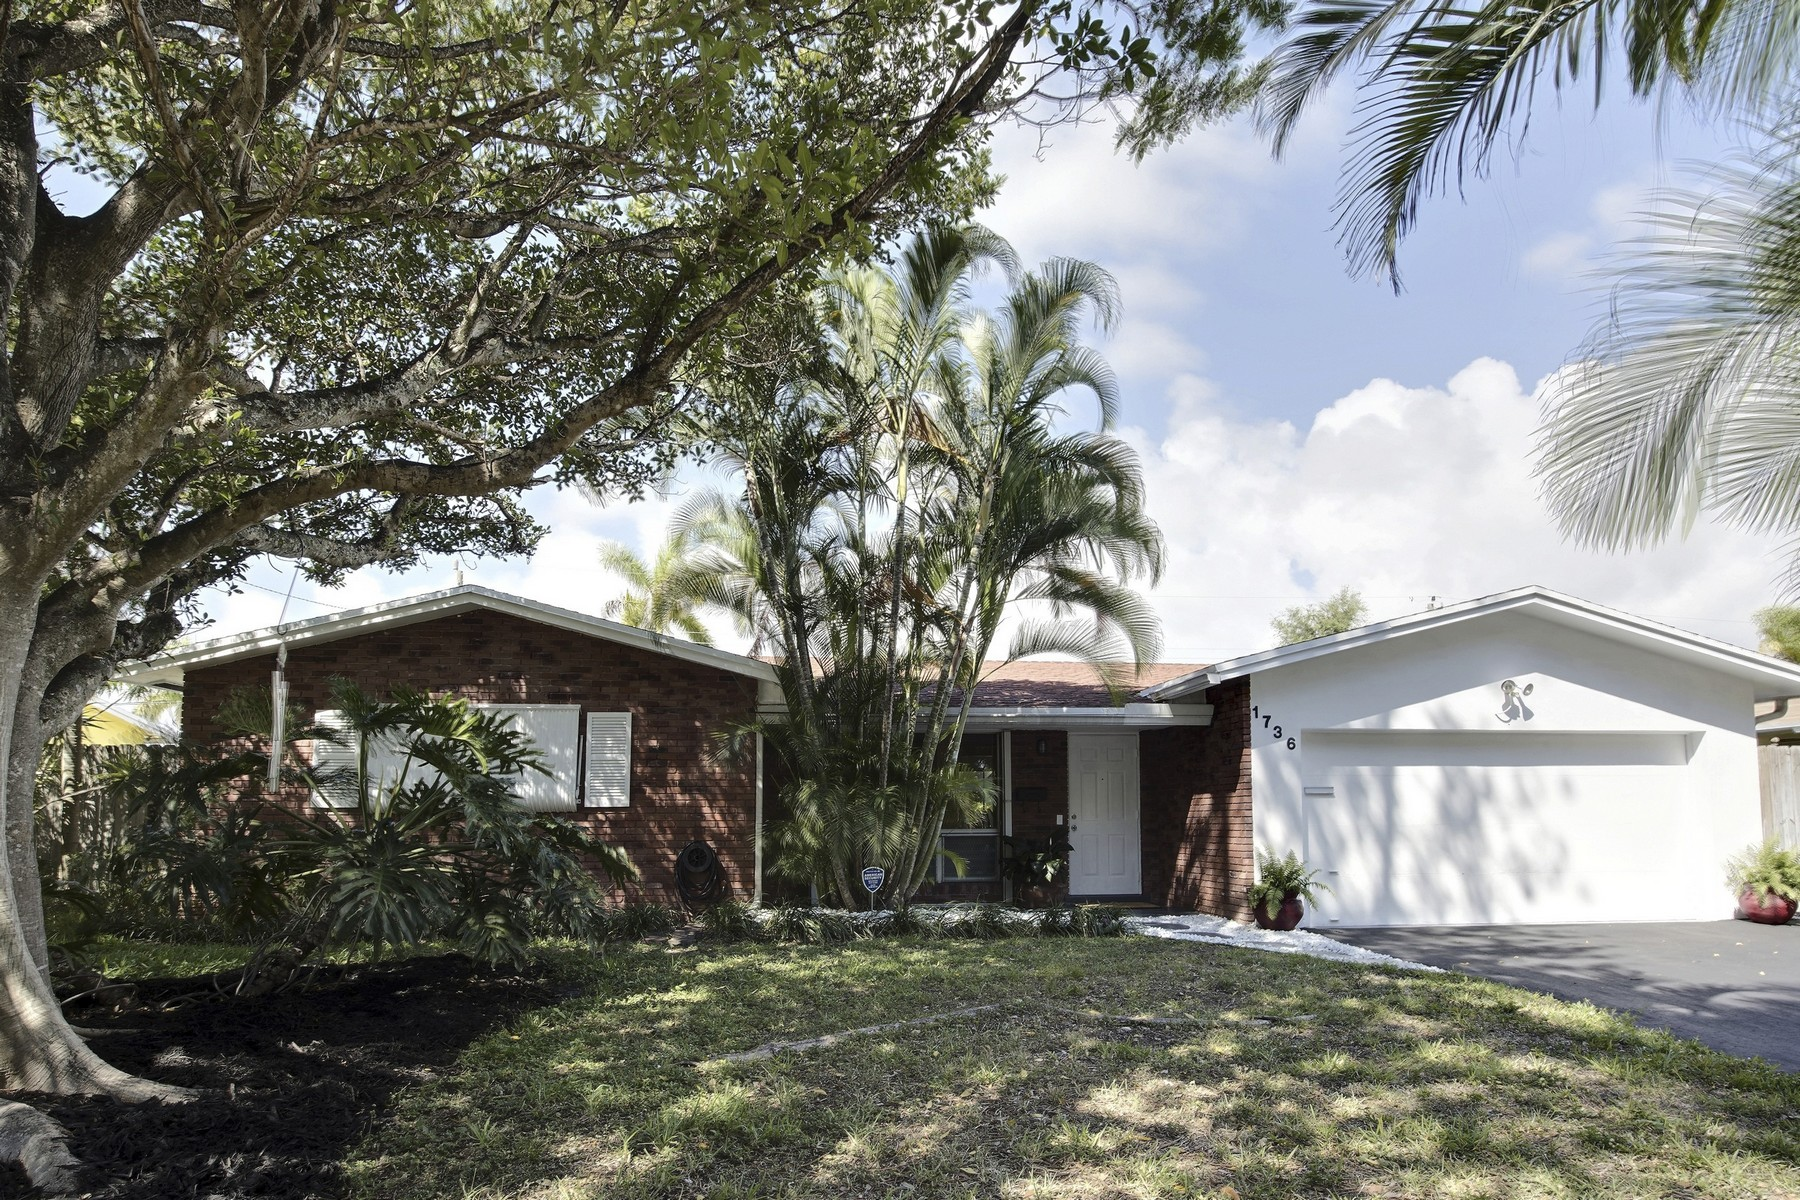 Single Family Home for Sale at Coral Ridge Isles 1736 NE 58 St. Fort Lauderdale, Florida 33334 United States